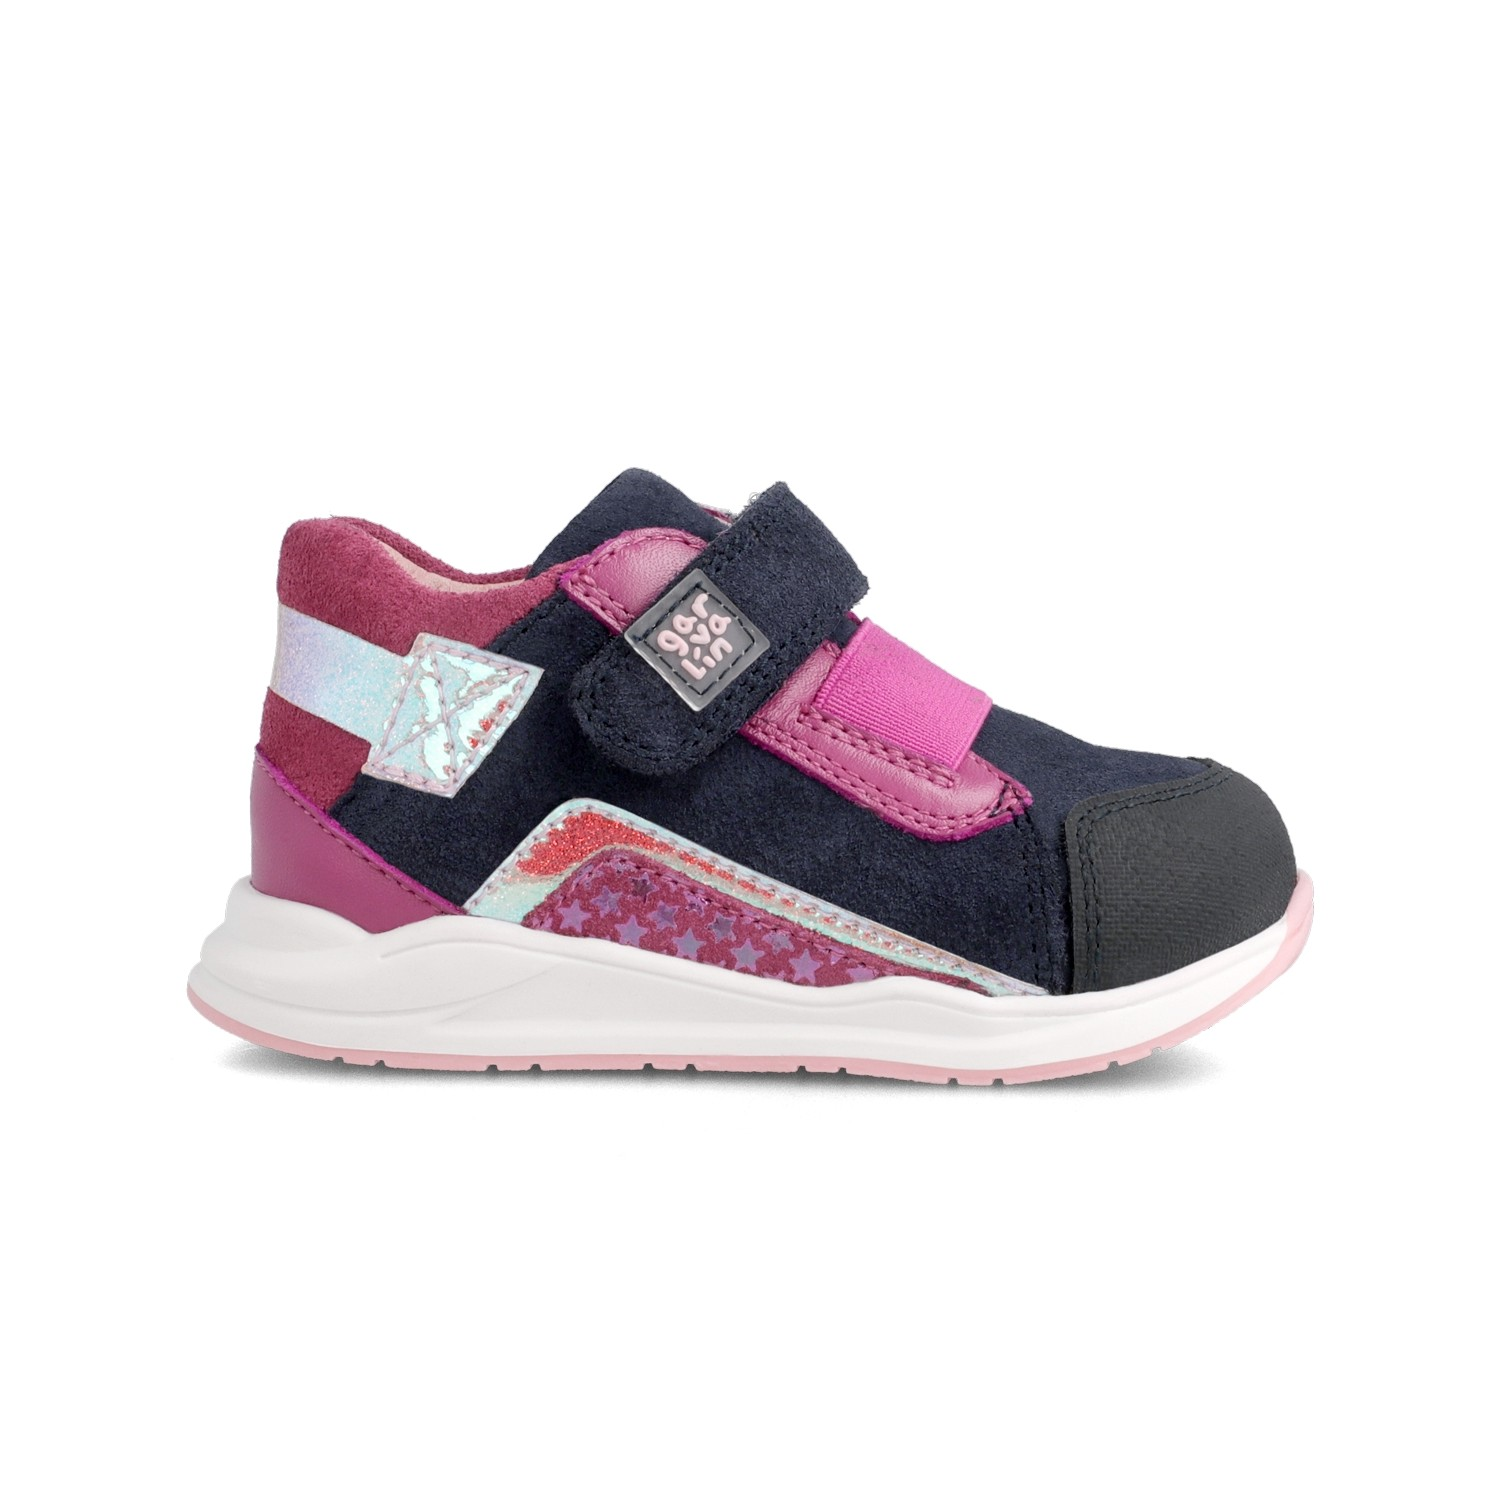 Leather sneakers for girl 211503